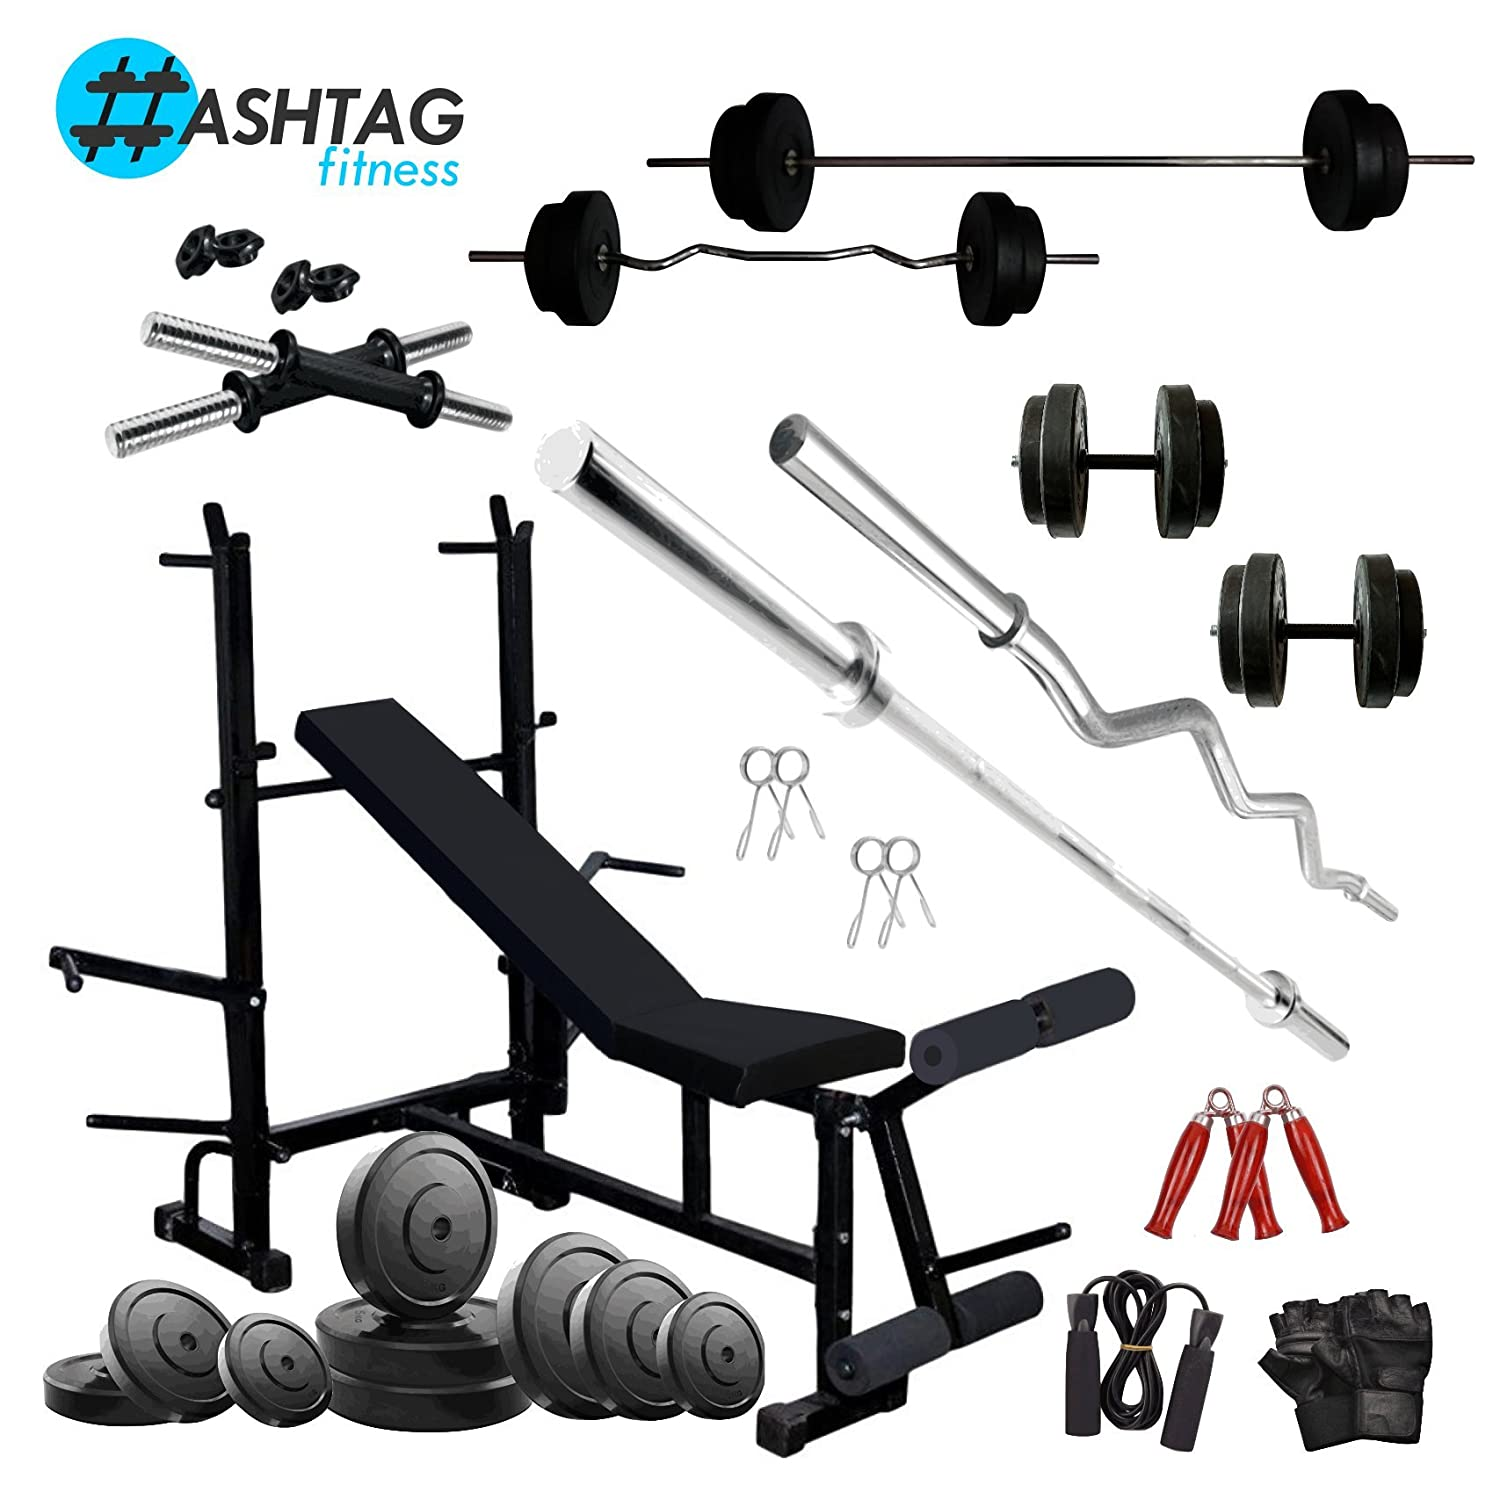 Remarkable Hashtag Fitness Home Gym Equipment Combo 50 Kg With 8 In 1 Multipurpose Bench Uwap Interior Chair Design Uwaporg